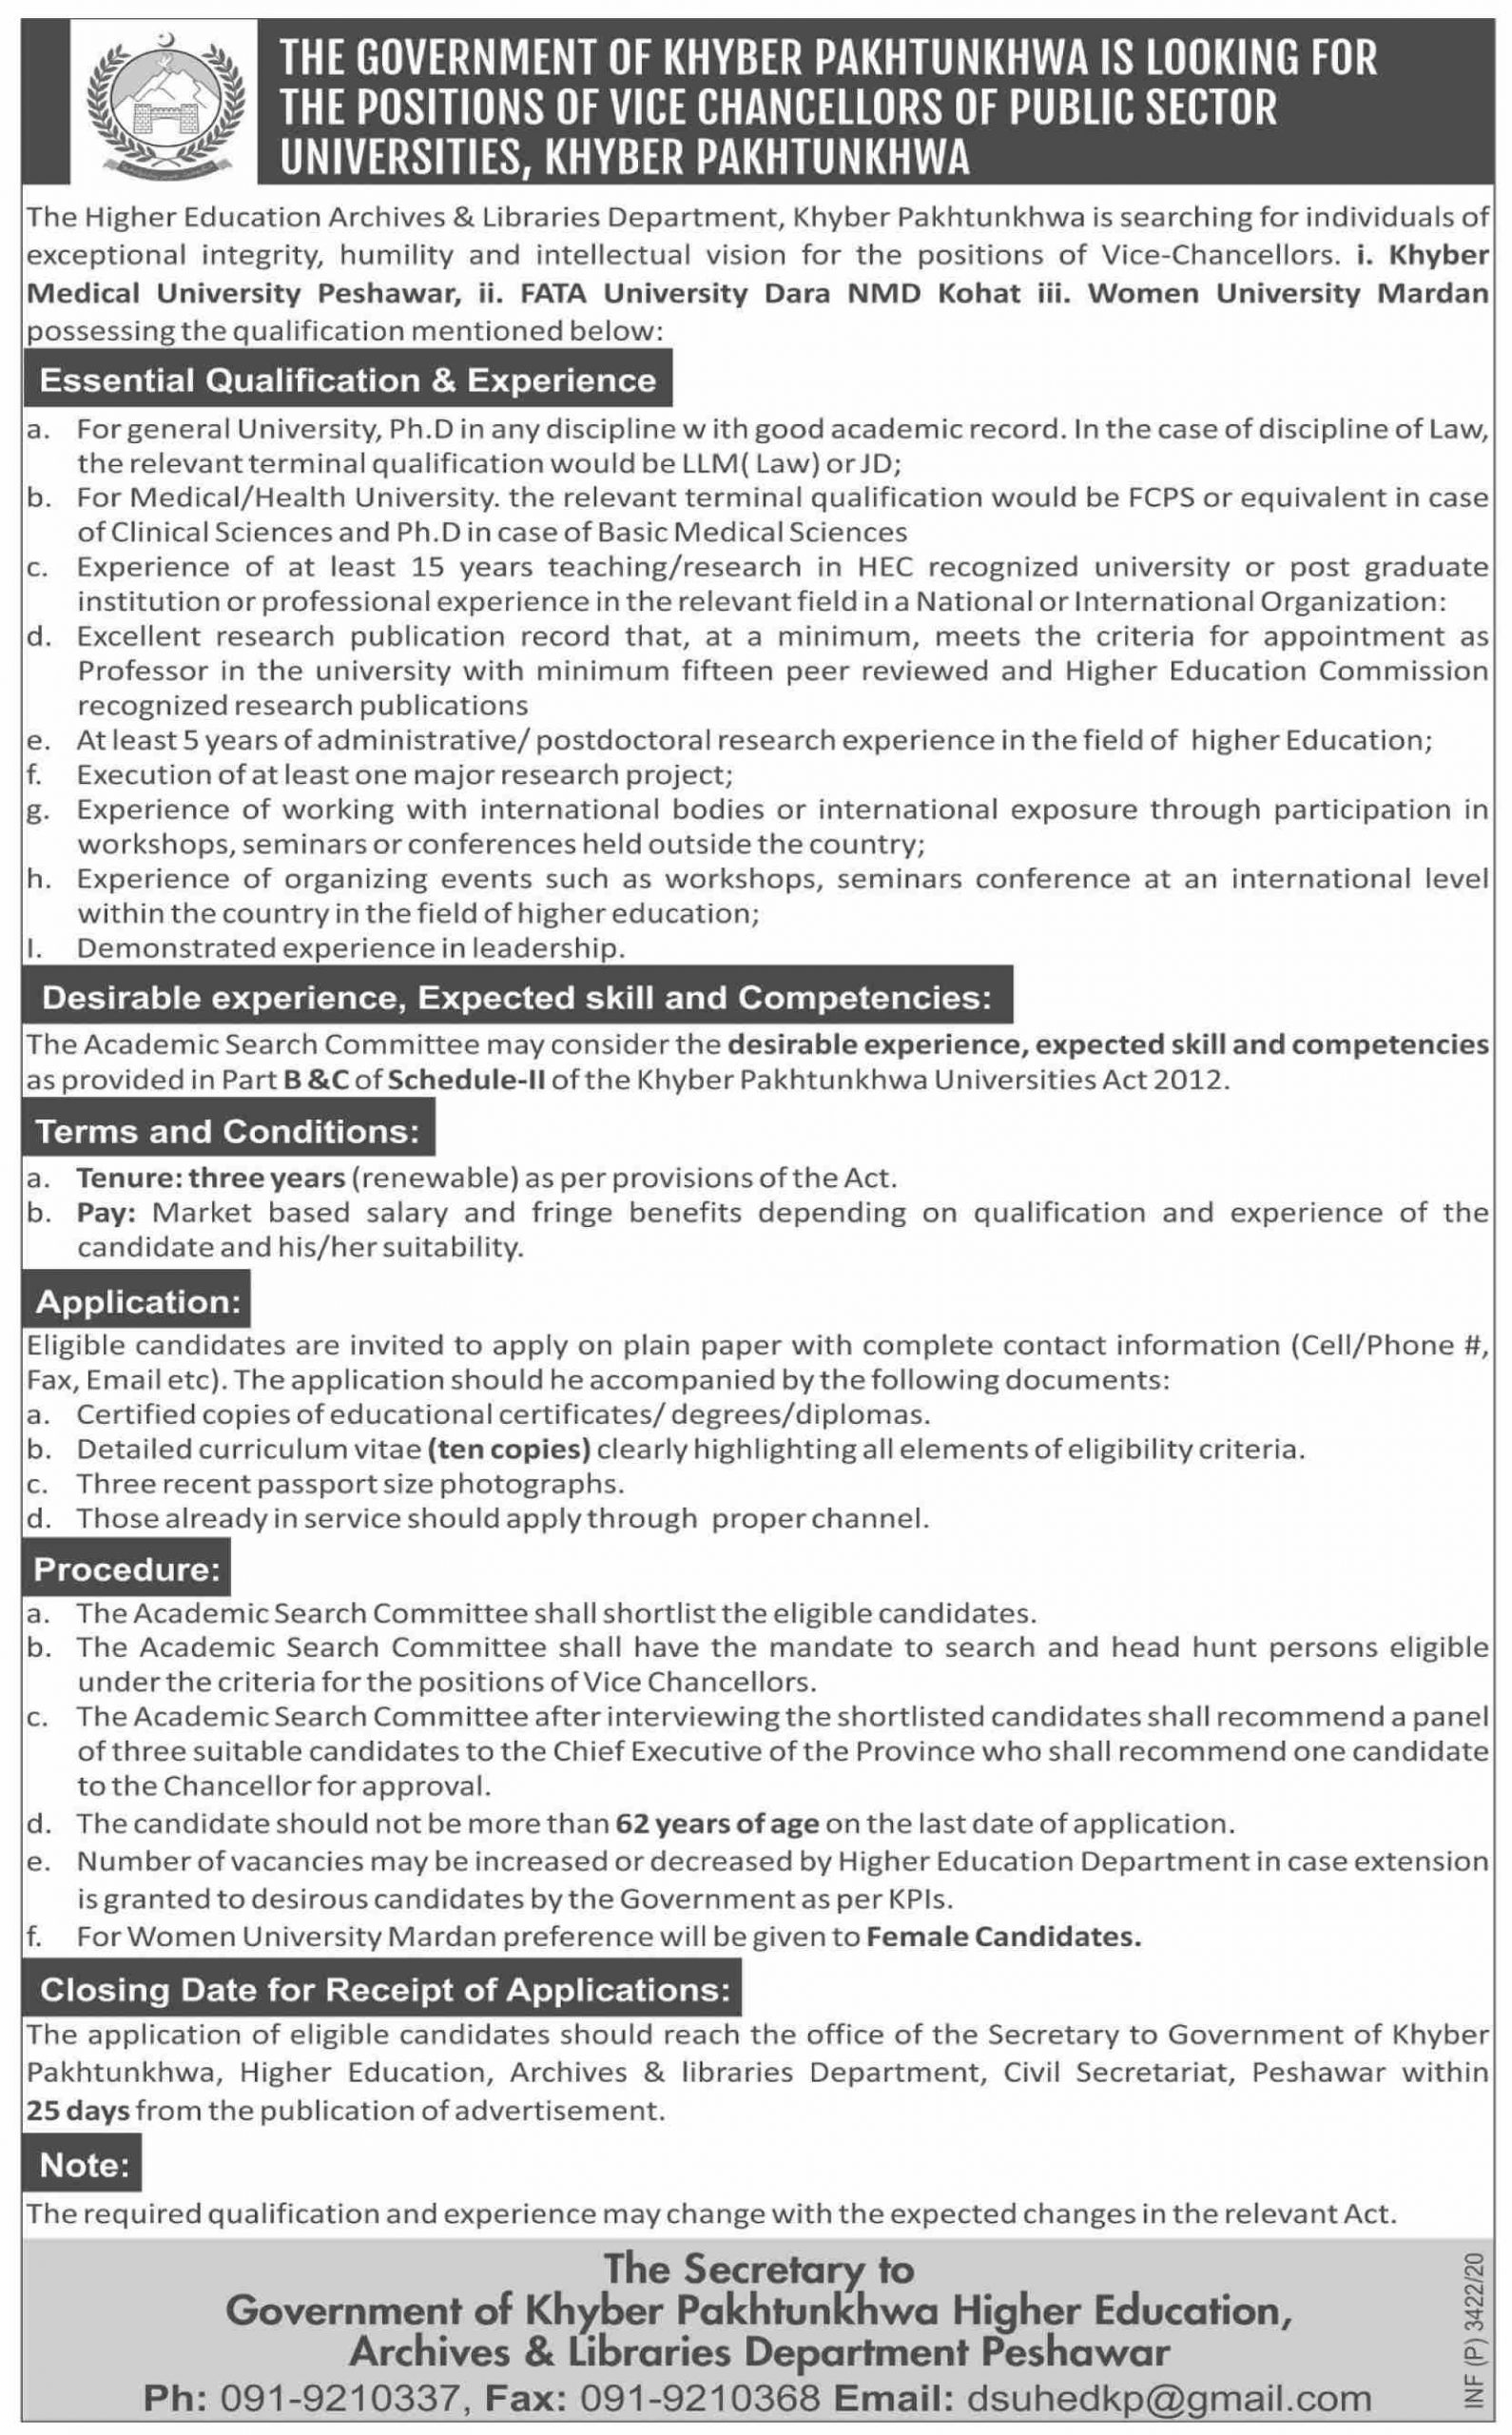 The Higher Education Archives & Libraries Department Khyber Pakhtunkhwa Jobs September 2020